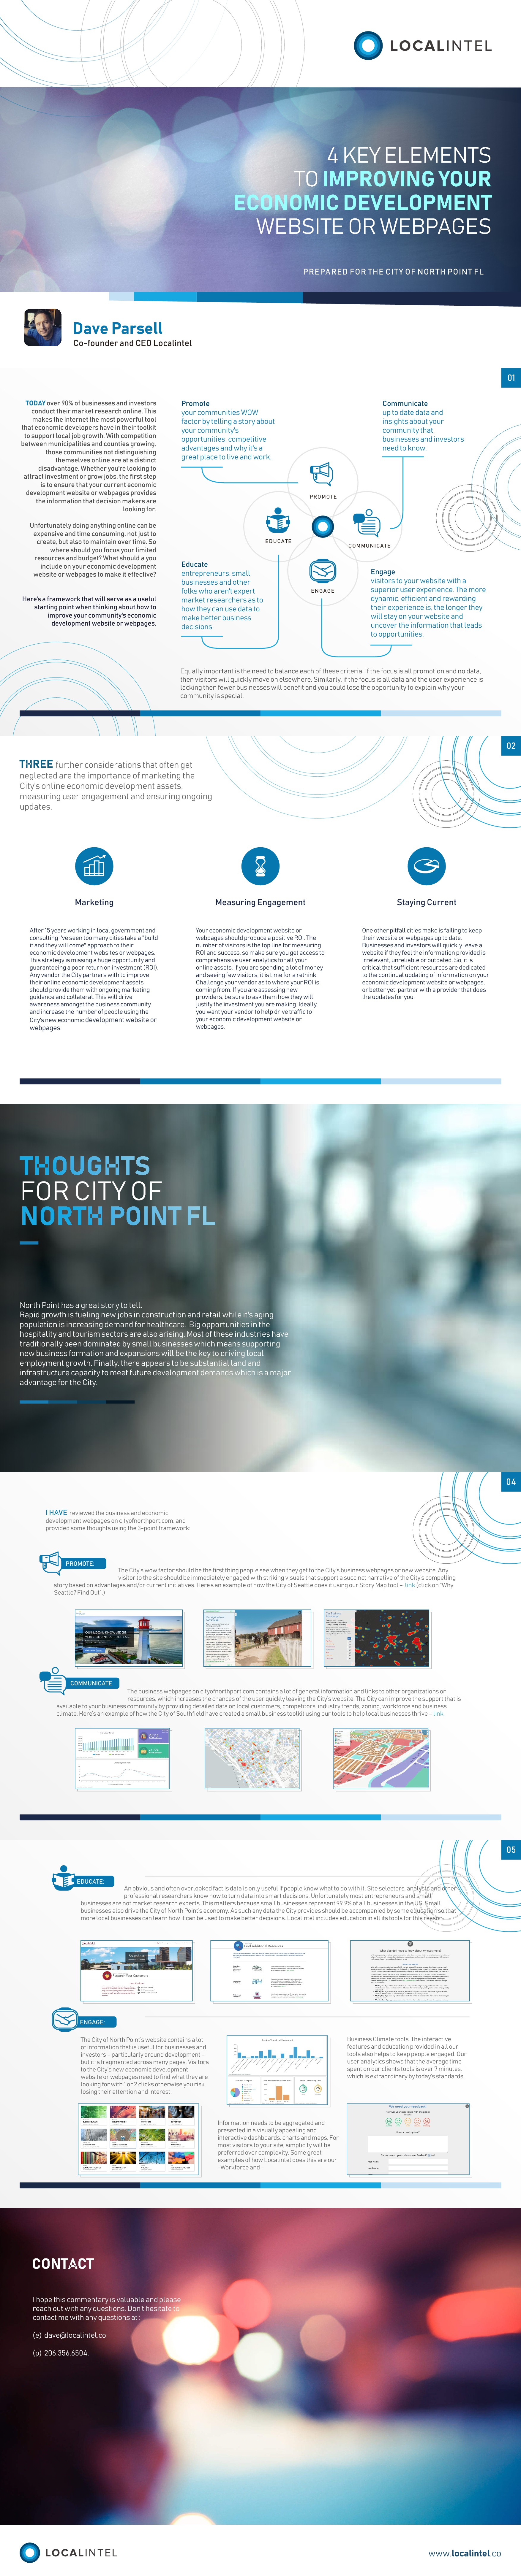 Make a difference - design white paper template for tech startup helping cities